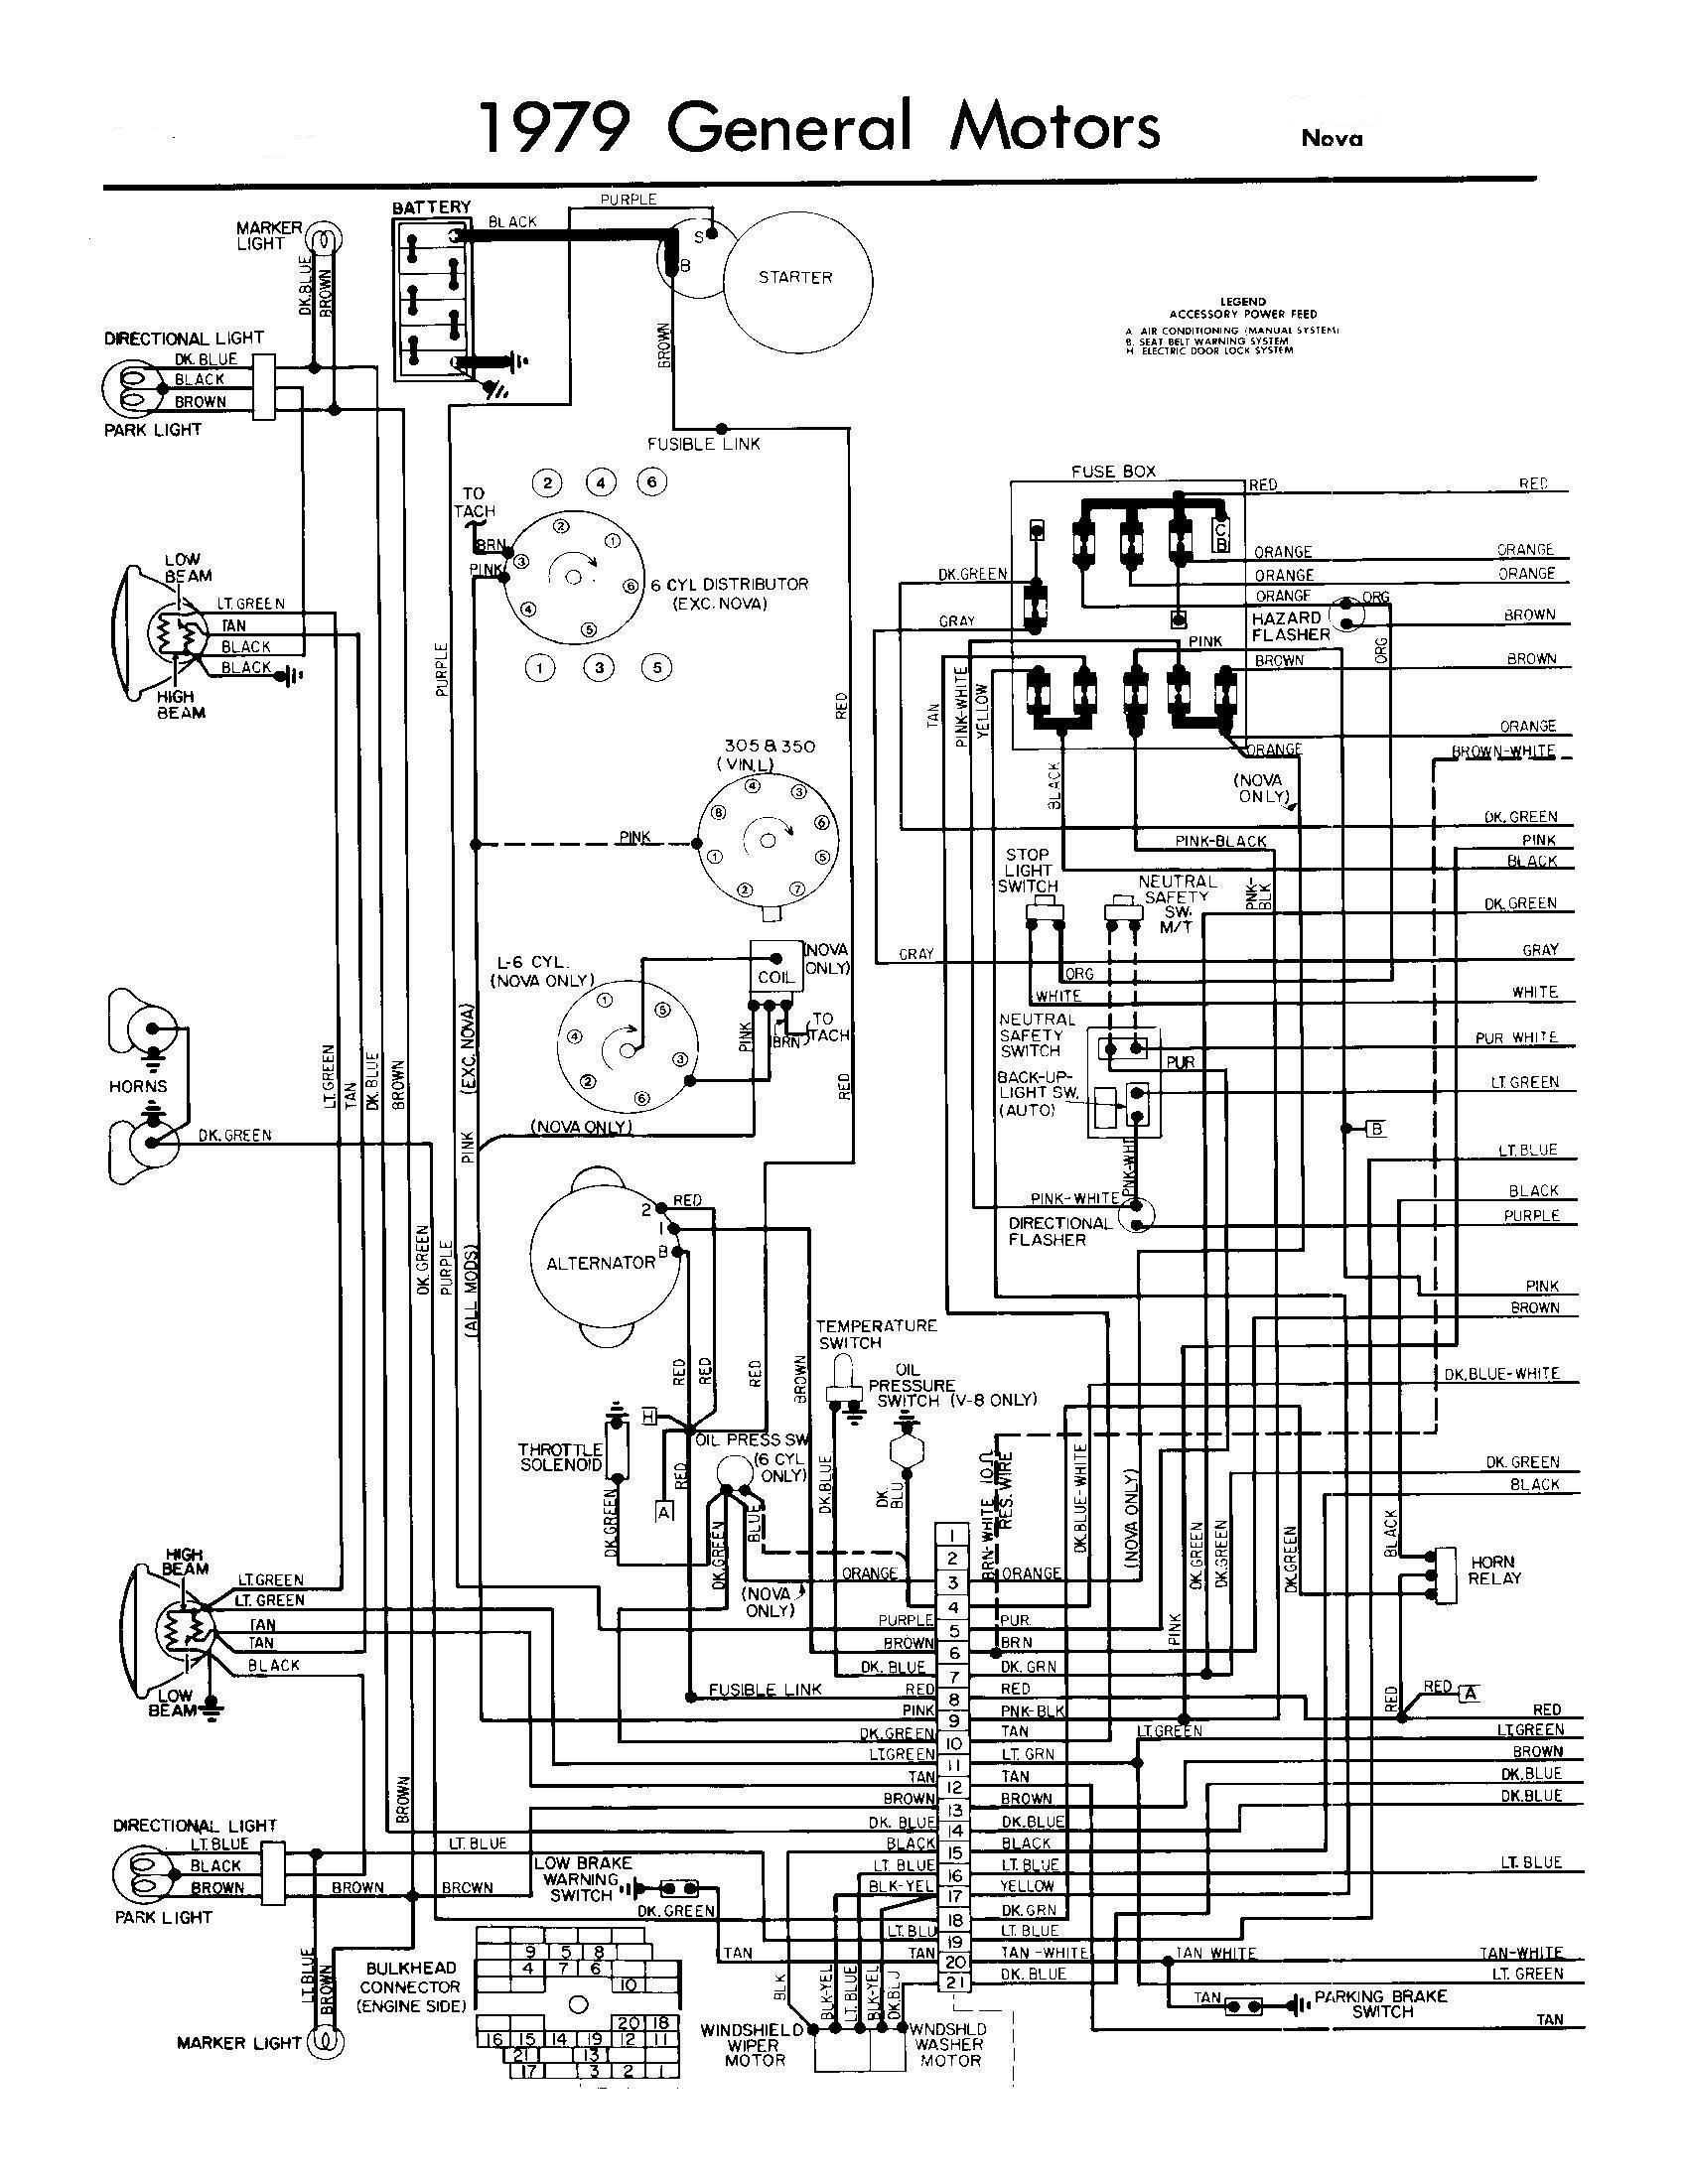 hight resolution of 1996 trans am alternator wiring diagram wiring diagram expert 1987 trans am alternator wiring diagram data